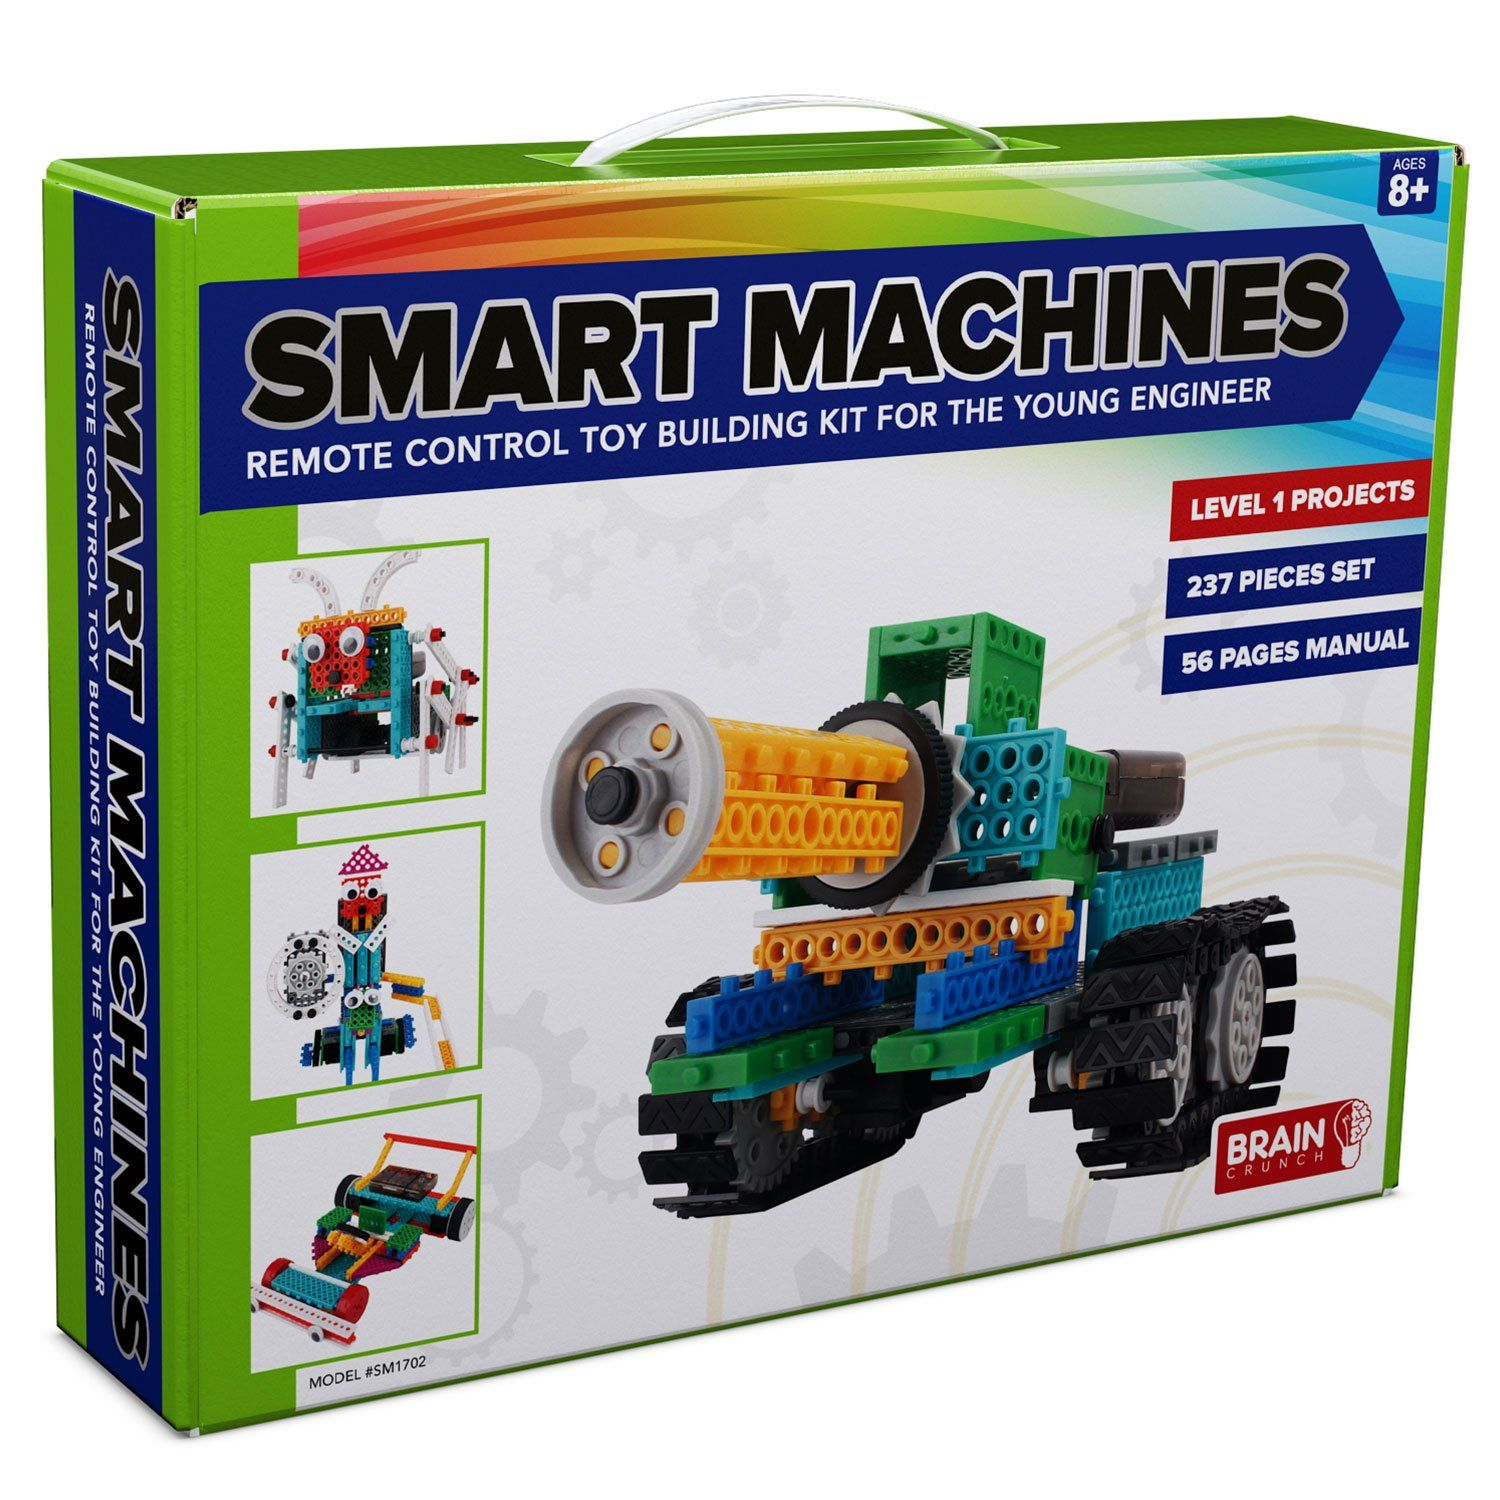 For MERCER 4 in 1 Robot Kit for Kids and Adults Make and